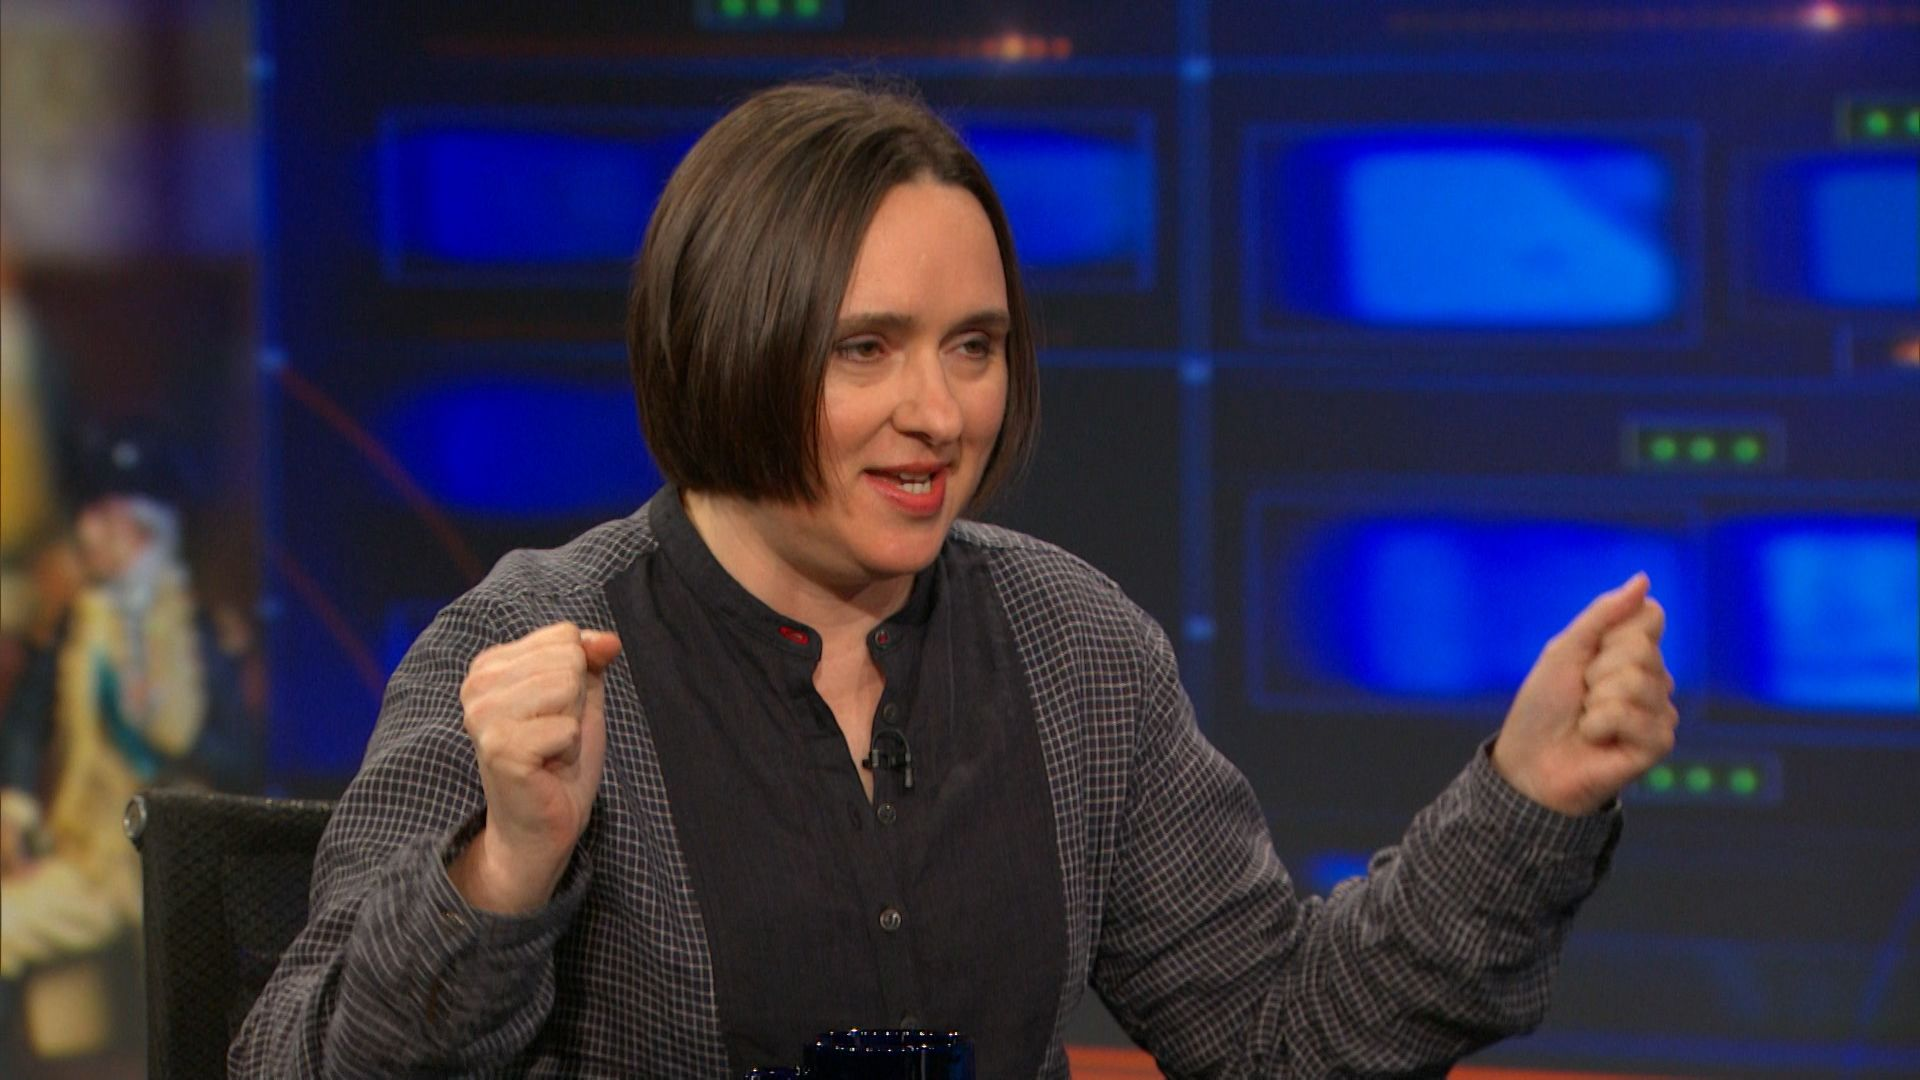 sarah vowell podcastsarah vowell incredibles, sarah vowell incredibles 2, sarah vowell, sarah vowell movies, sarah vowell take the cannoli, sarah vowell voice actor, sarah vowell twitter, sarah vowell age, sarah vowell imdb, sarah vowell violet parr, sarah vowell net worth, sarah vowell 2004, sarah vowell new book, sarah vowell new york times, sarah vowell podcast, sarah vowell interview, sarah vowell essays, sarah vowell assassination vacation, sarah vowell lafayette, sarah vowell hawaii